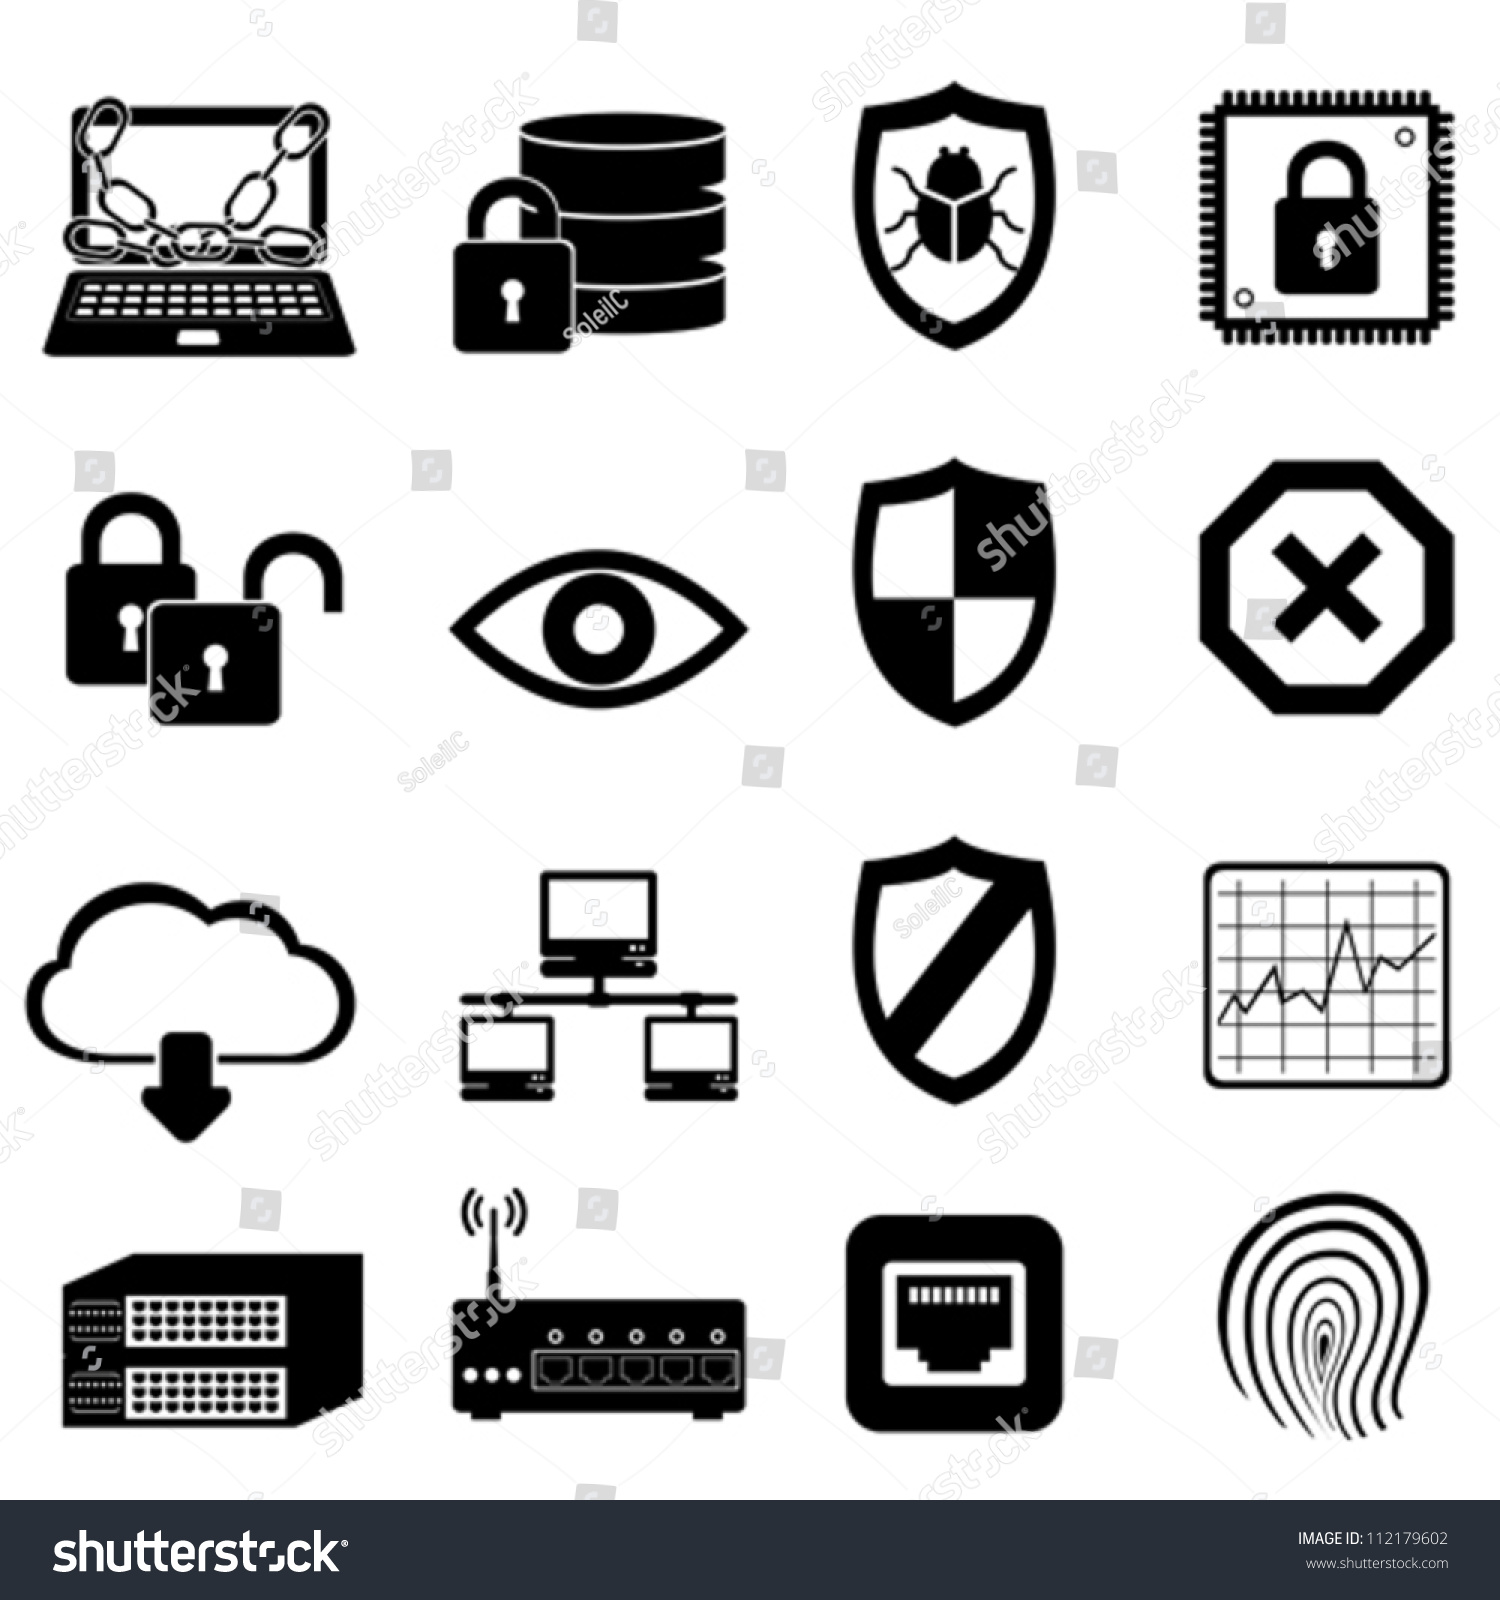 Network Computer Cyber Security Icon Set Stock Vector ...